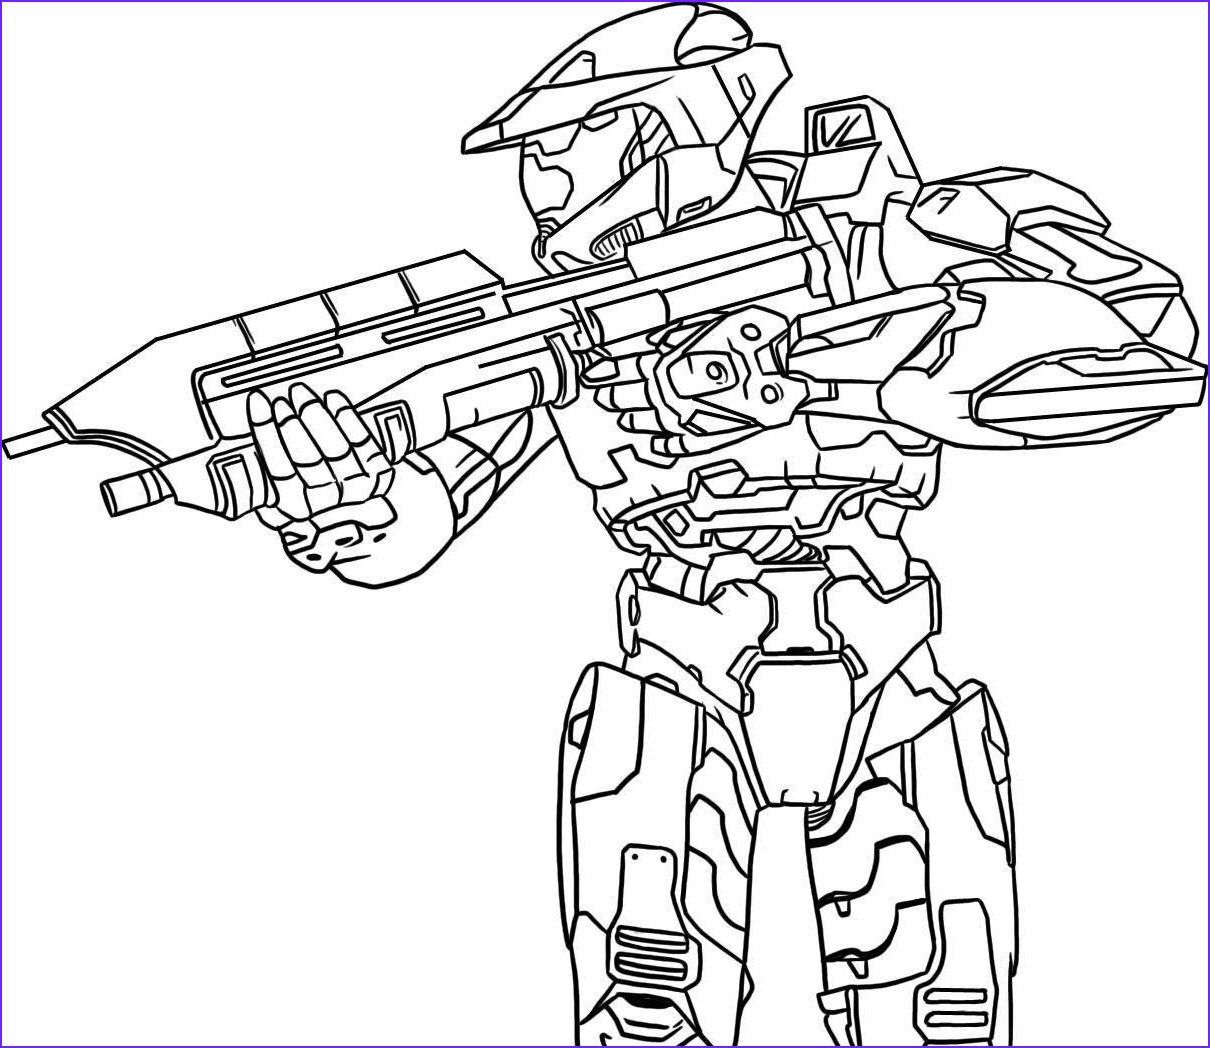 Master Chief Coloring Page Luxury Stock Halo Coloring Pages Coloringpages Ly